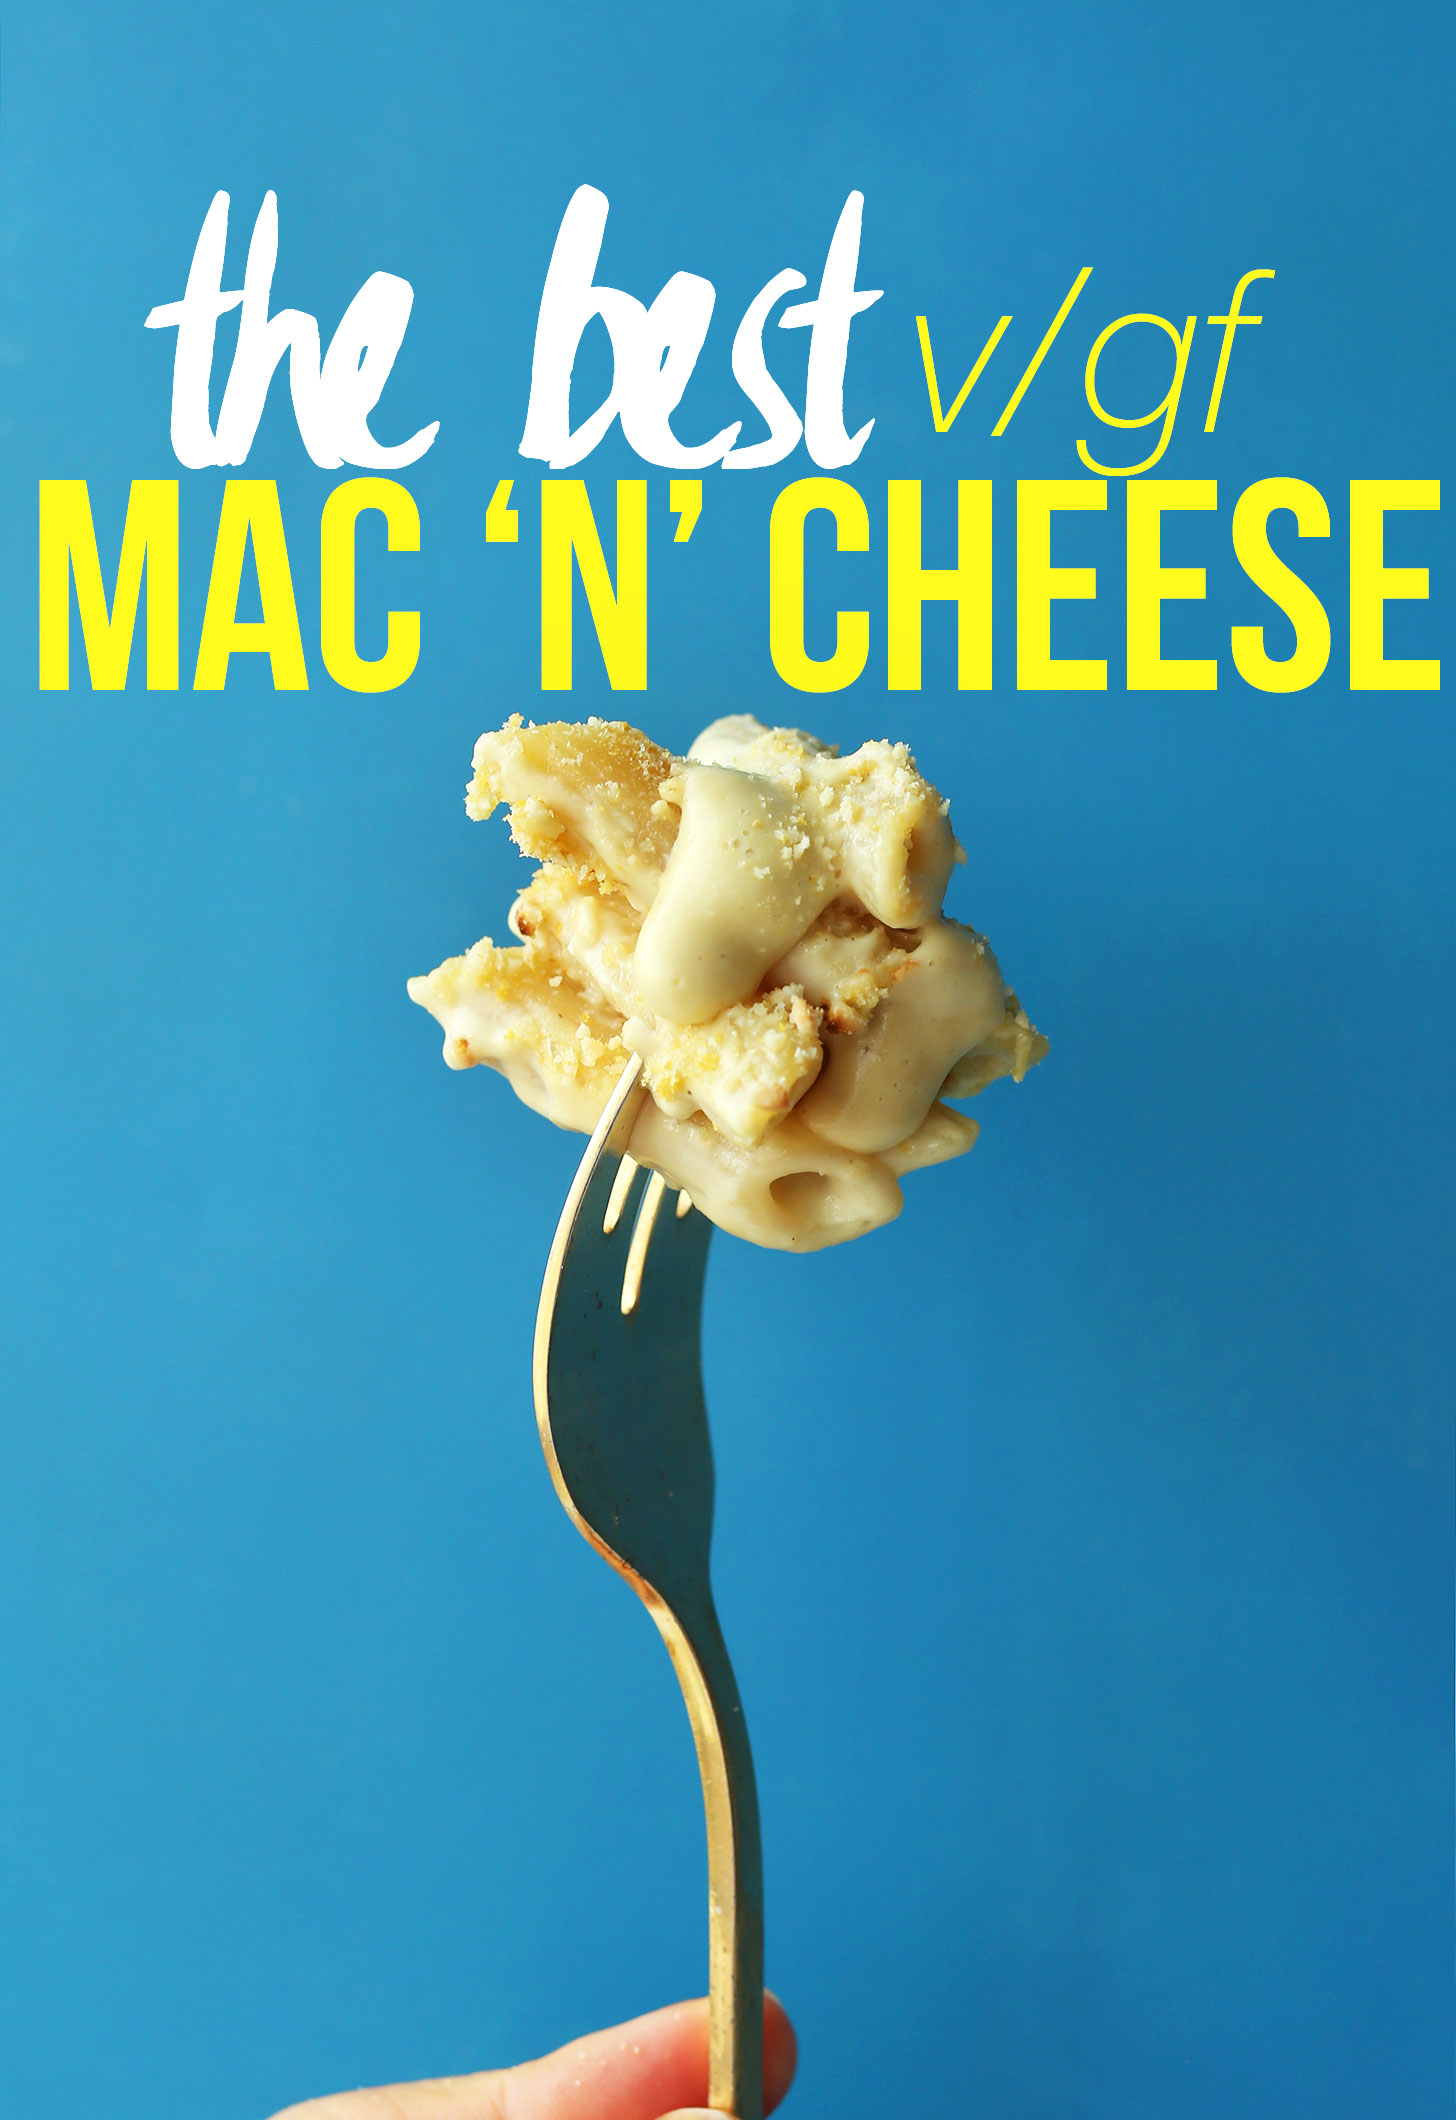 Grabbing a bite of the most delicious homemade gluten-free vegan mac n cheese